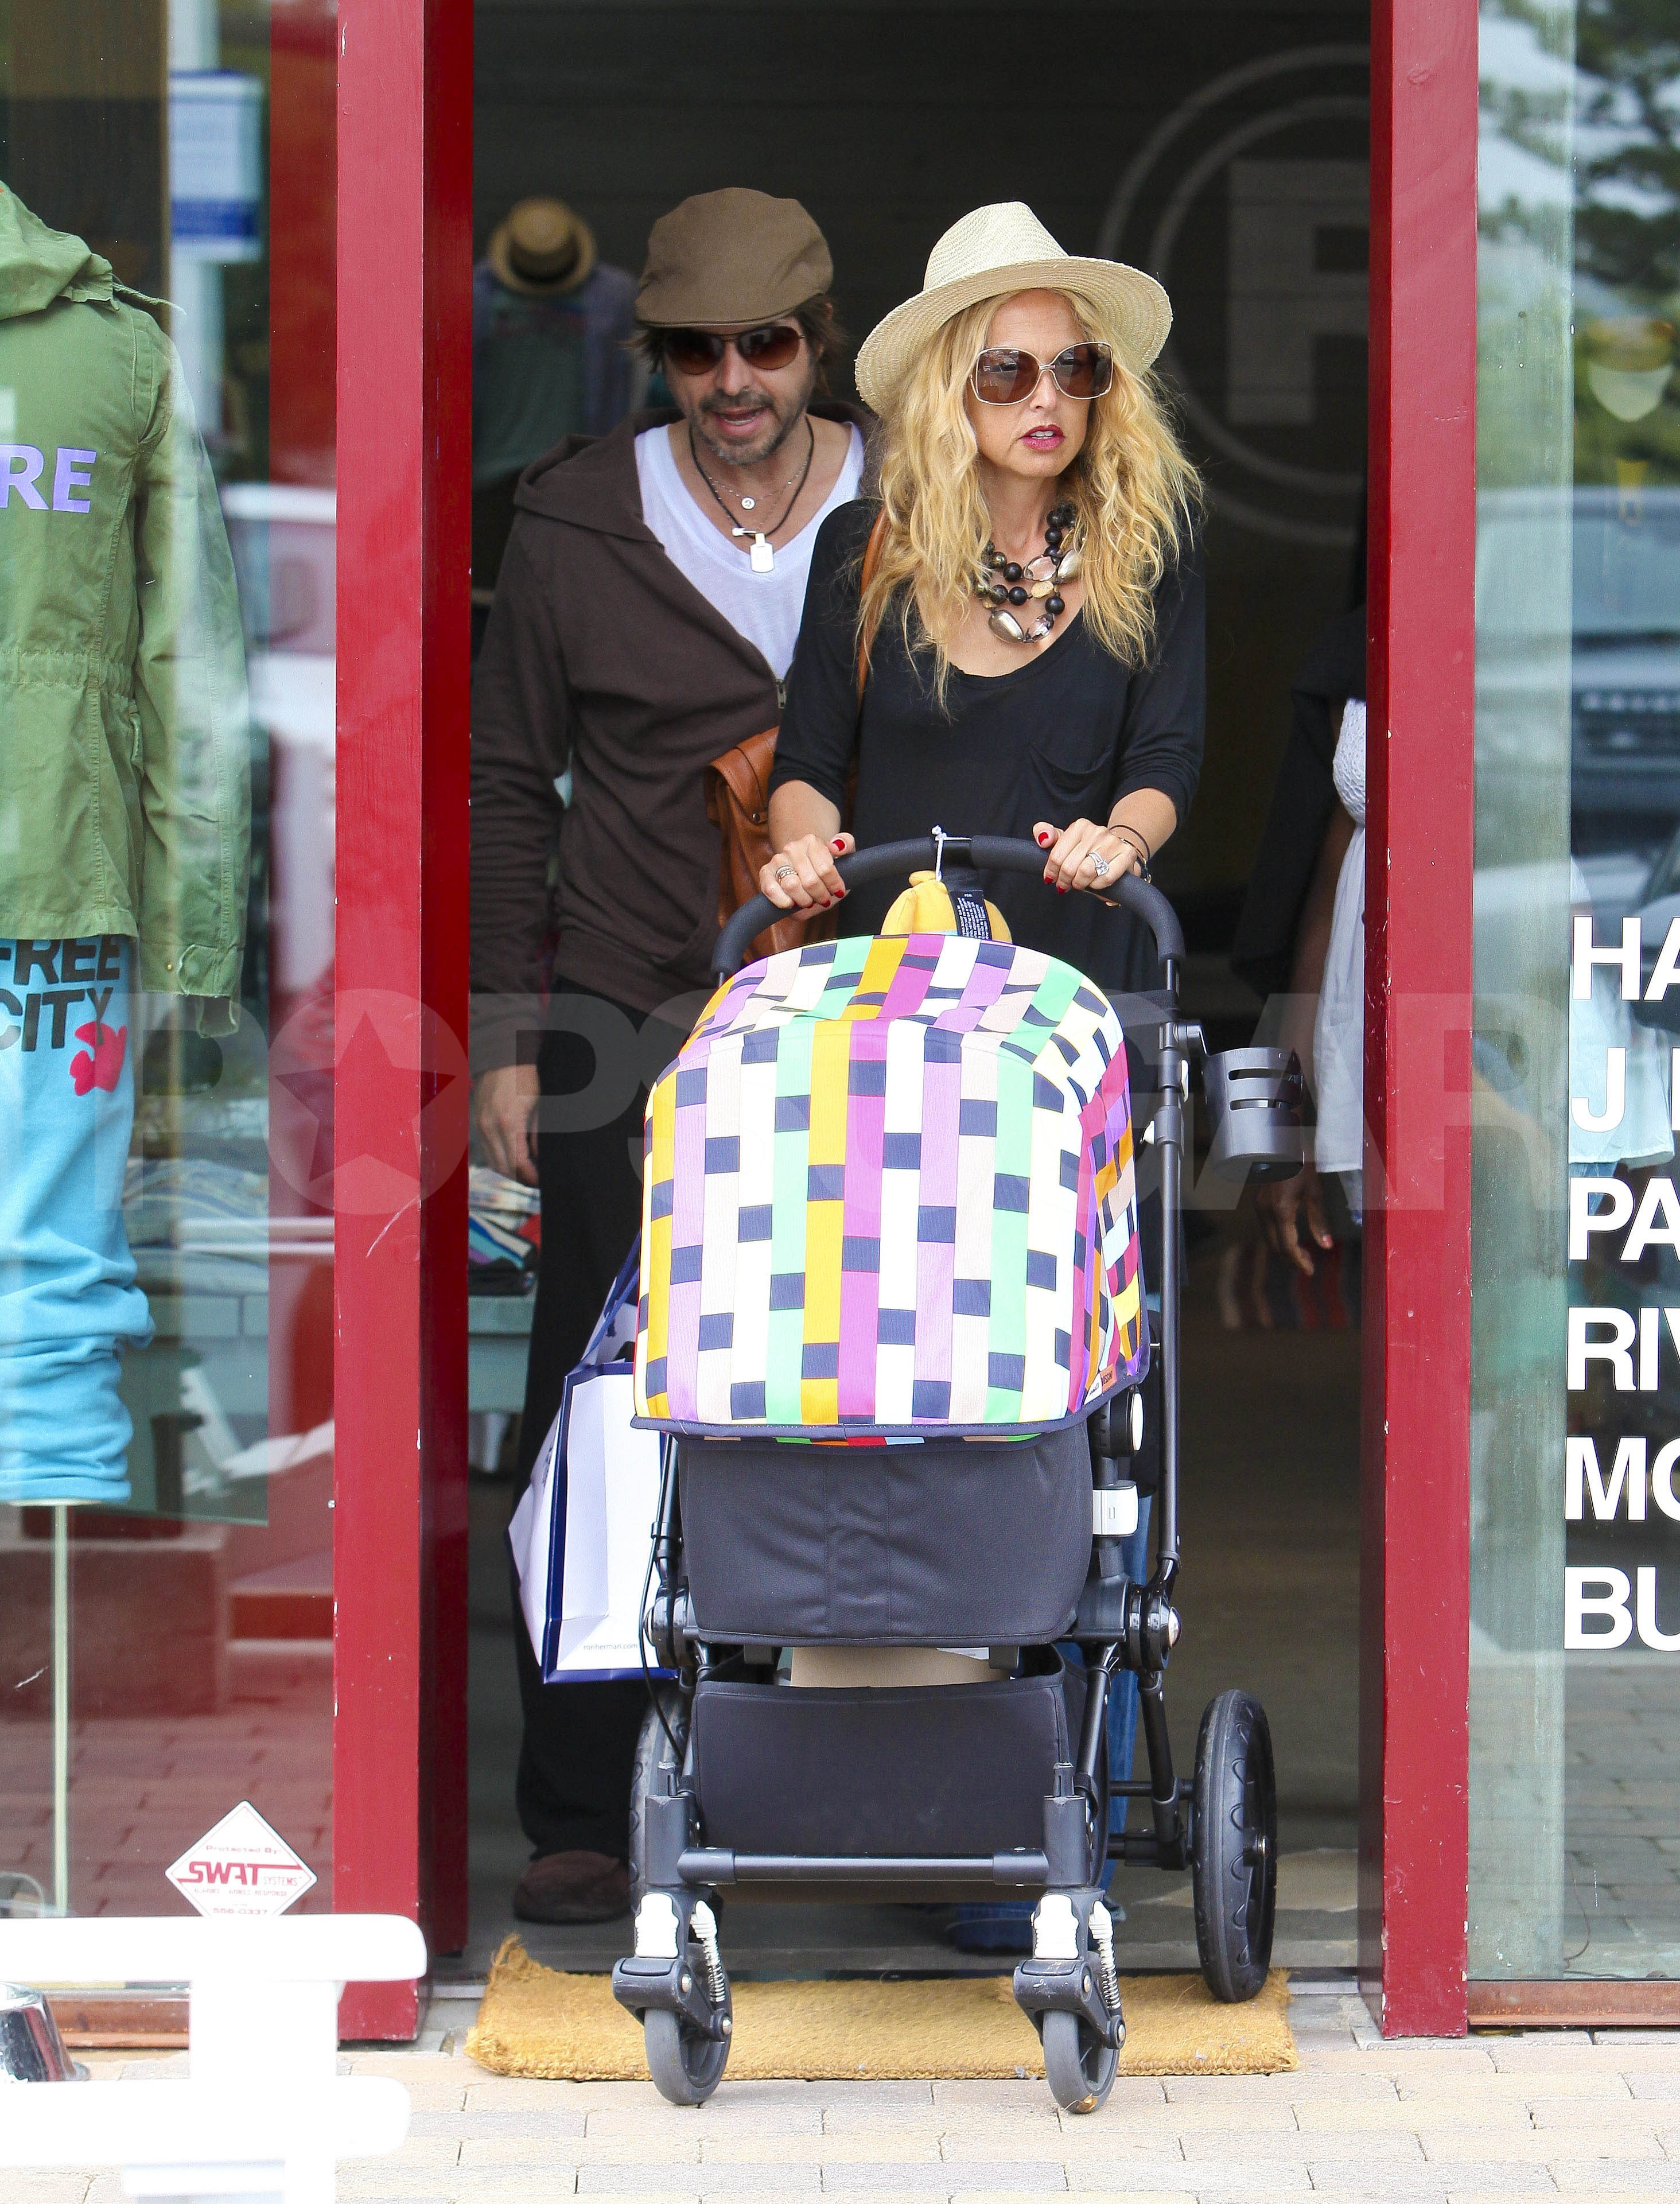 Rachel Zoe and Rodger Berman pushed baby Skyler in his stroller.